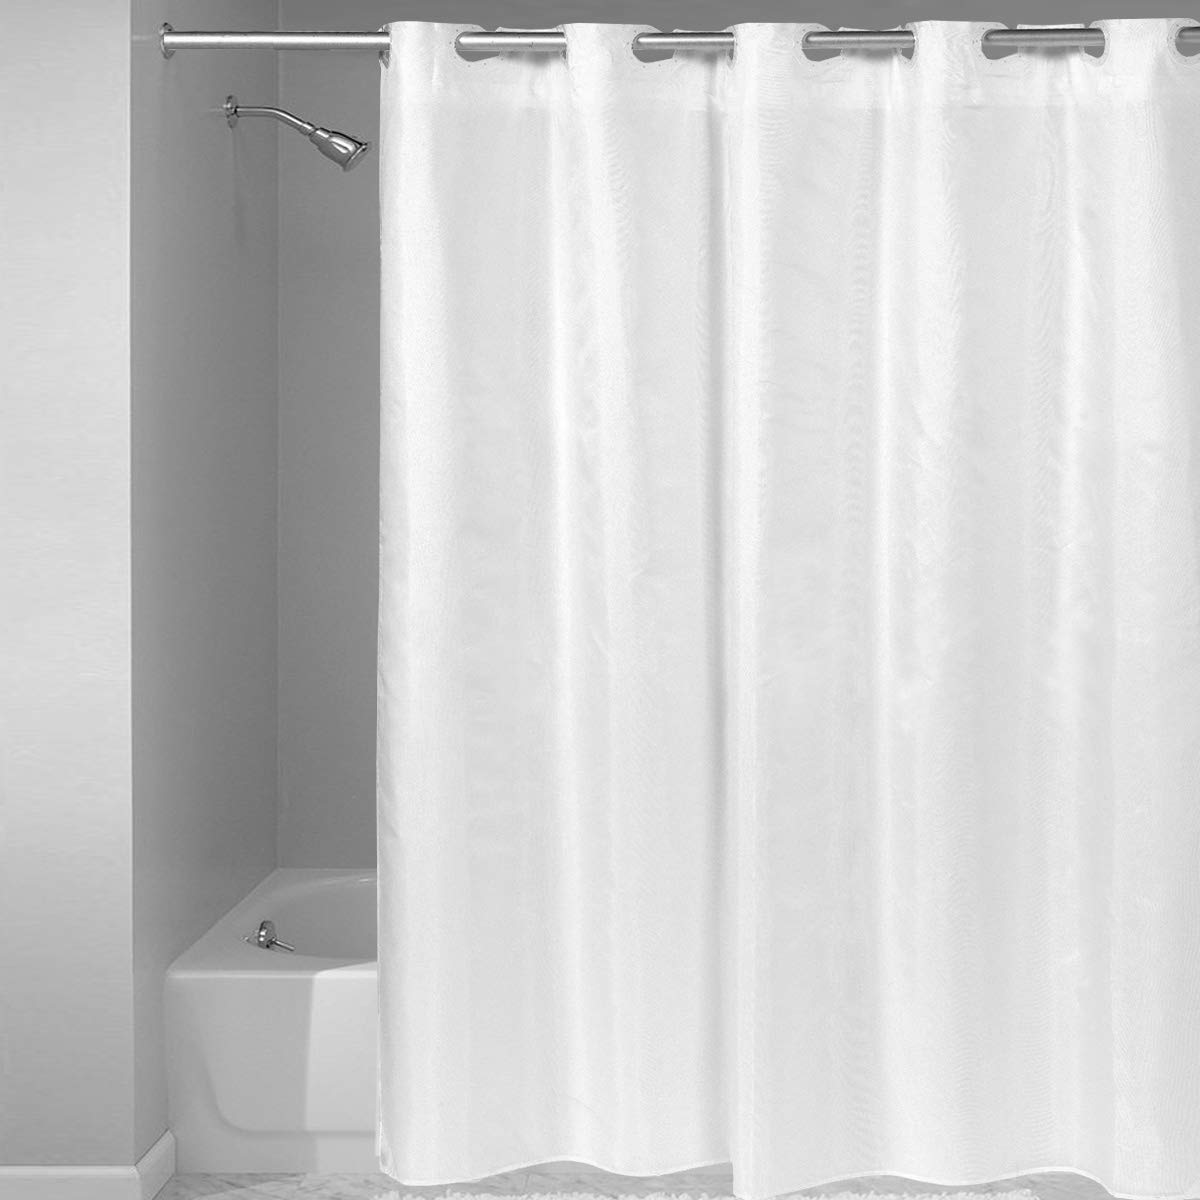 Heavy-Duty Vinyl Pre-Hooked Sweet Home Collection Replacement Curtain Liner Fashionable-with Rust Proof Metal Grommets and Anti-Slip Magnets 70 x 72 White Mildew Resistant Bacterial